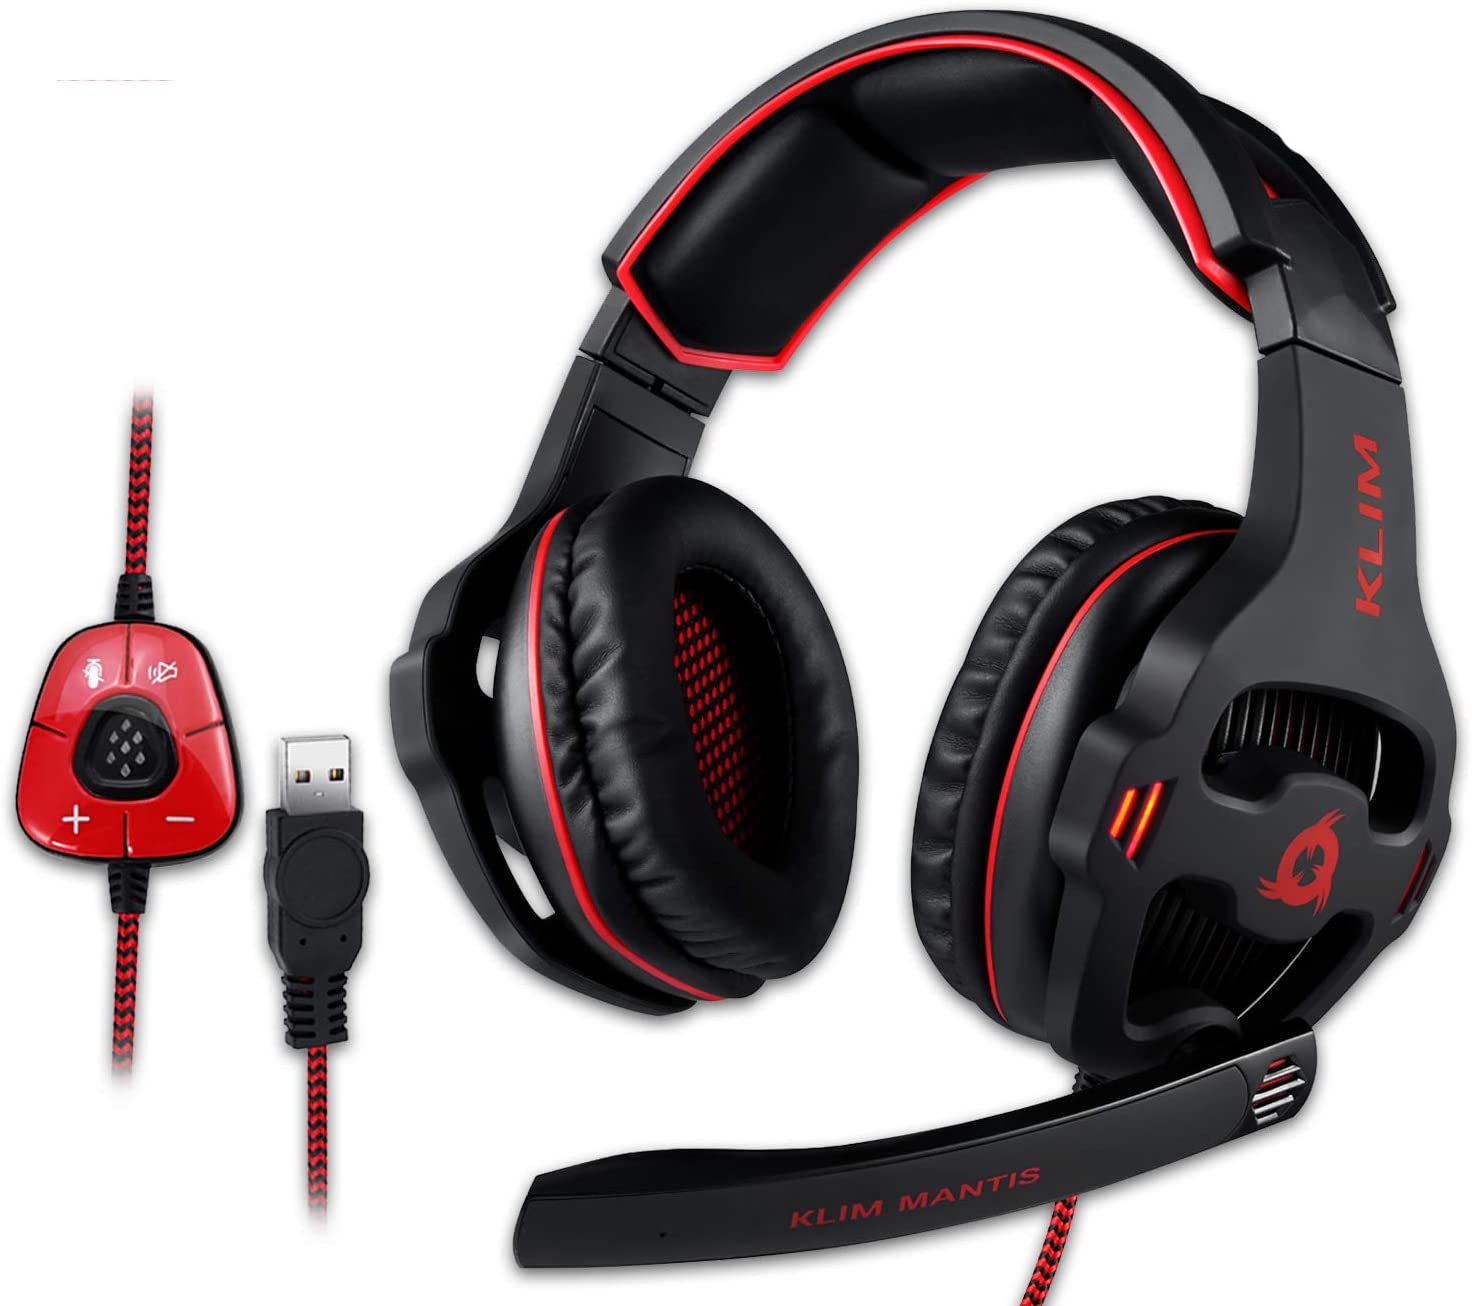 KLIM Mantis - Gaming Headphones - USB Headset with Microphone - for PC, PS4, Nintendo Switch, Mac, 7.1 Surround Sound - [ New 2021 Version ] - Noise ...